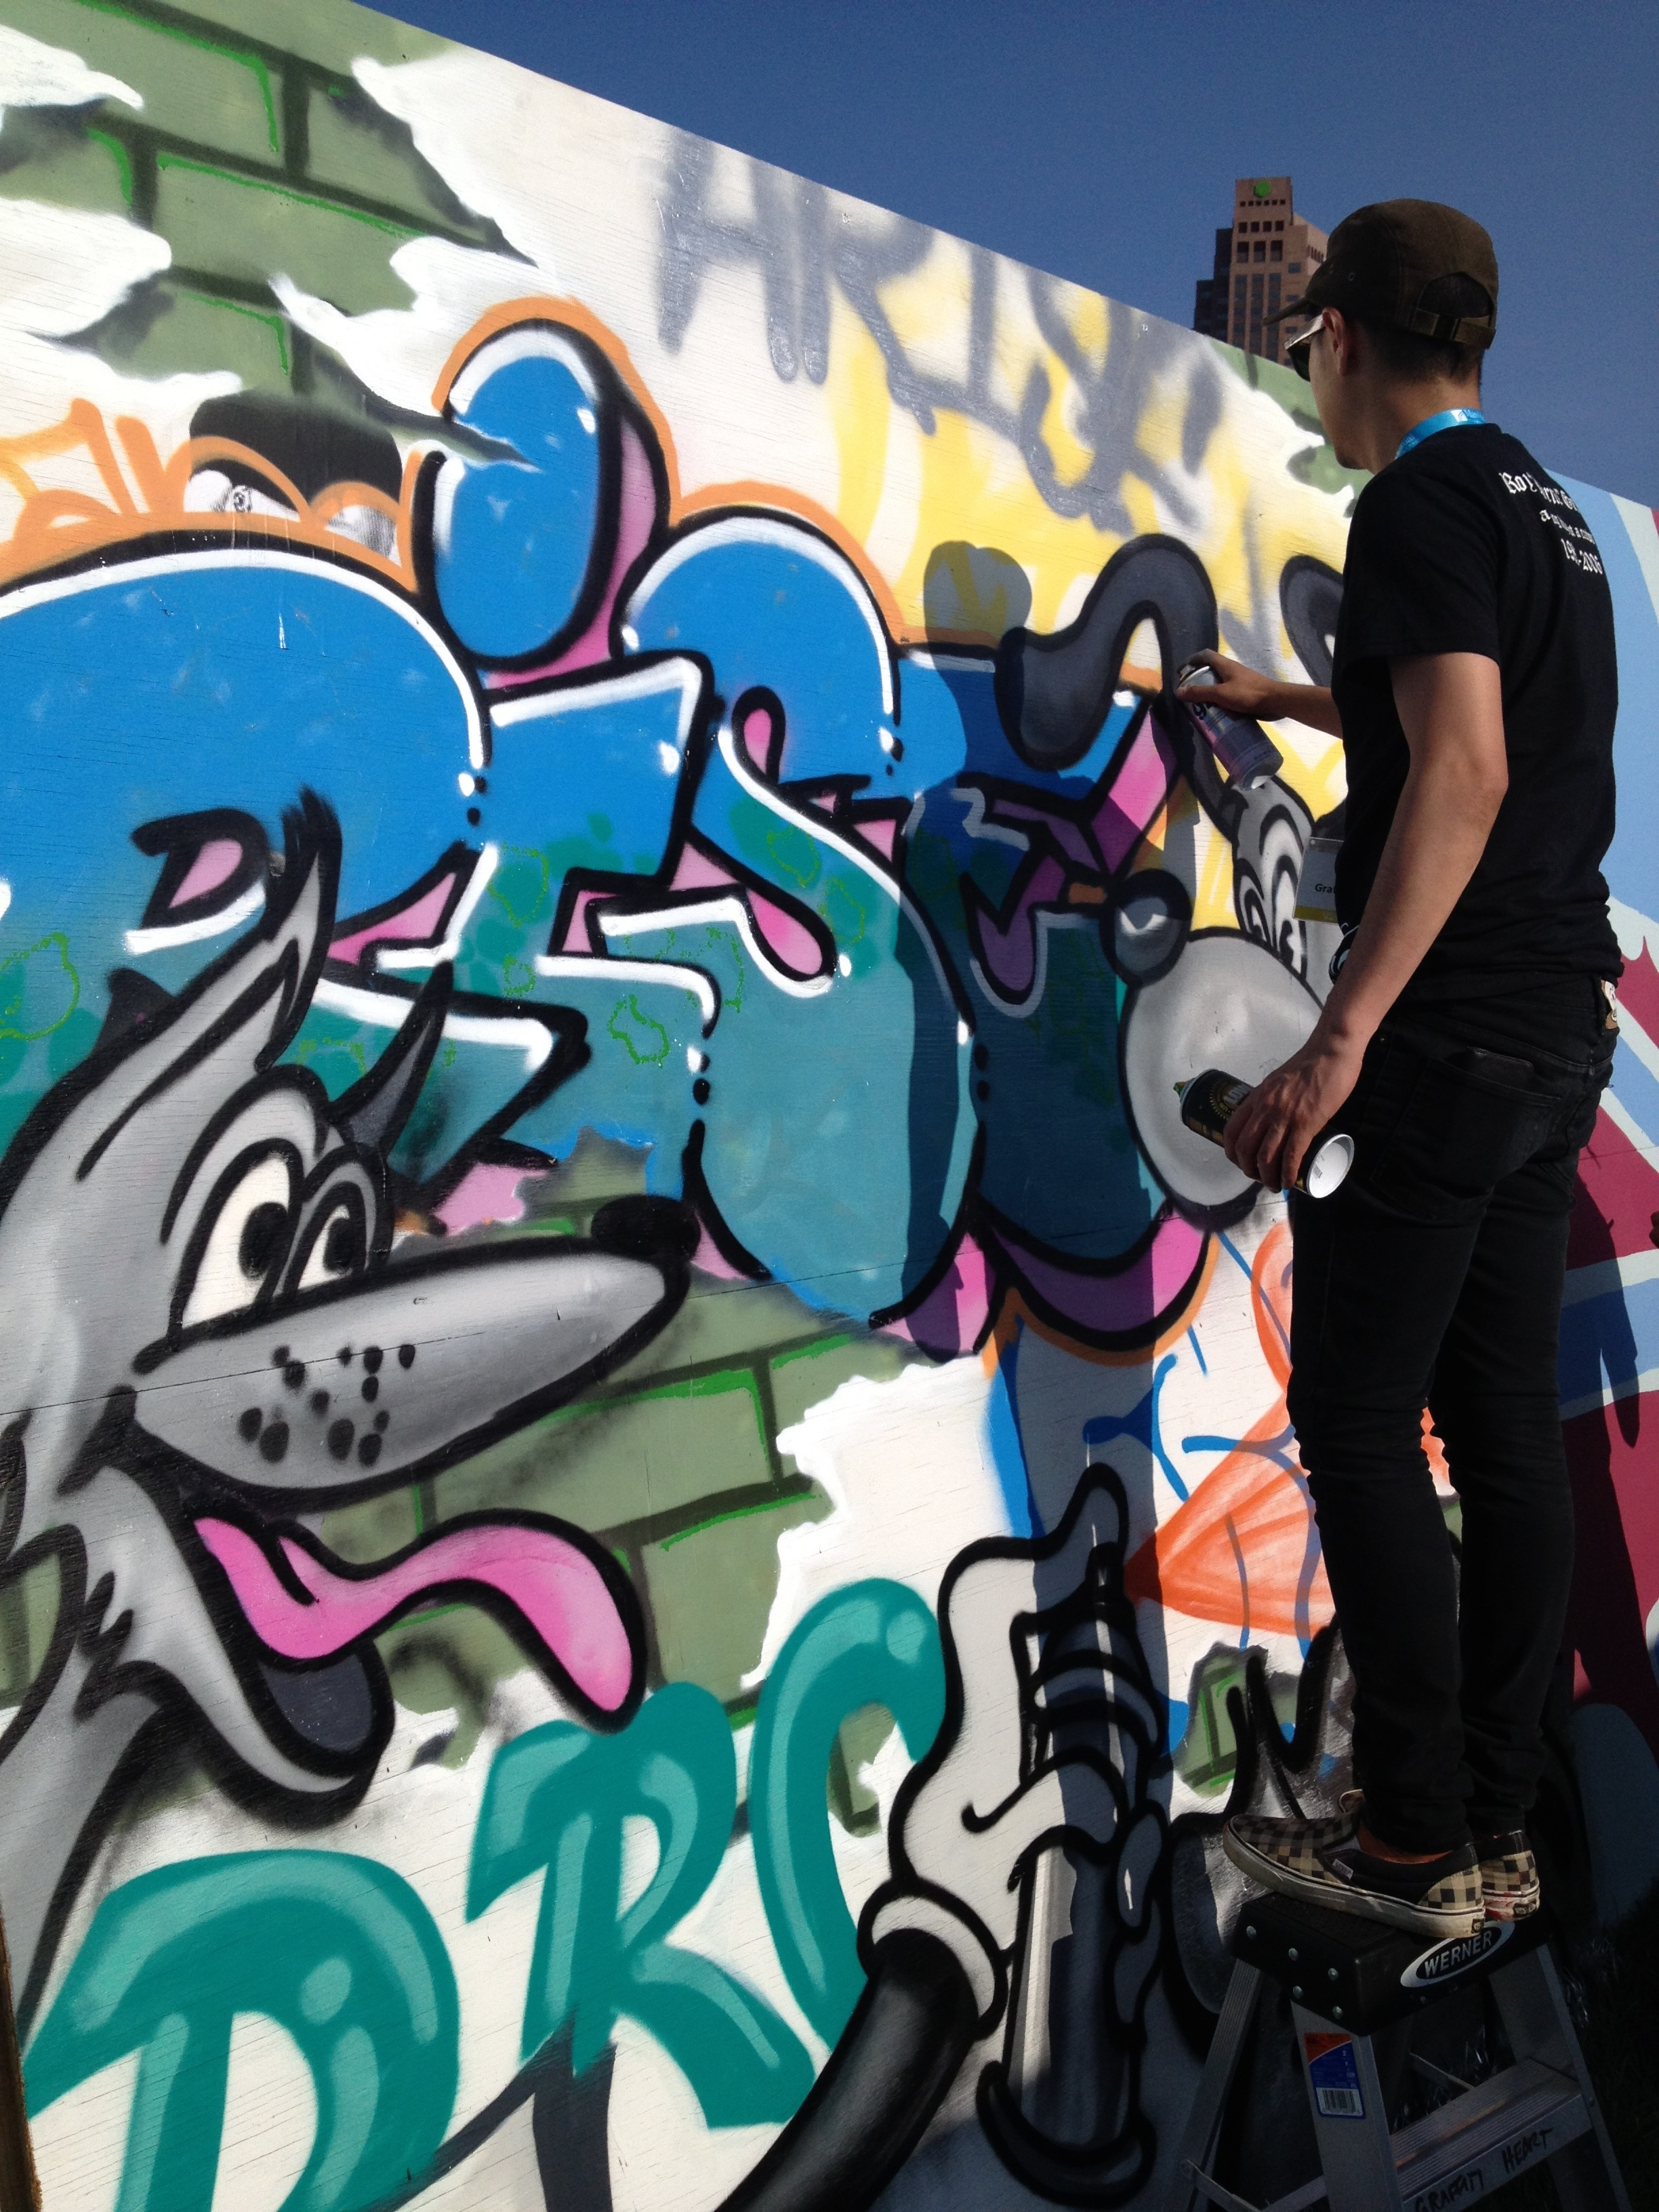 Graffiti art meaning - Gay Games 9